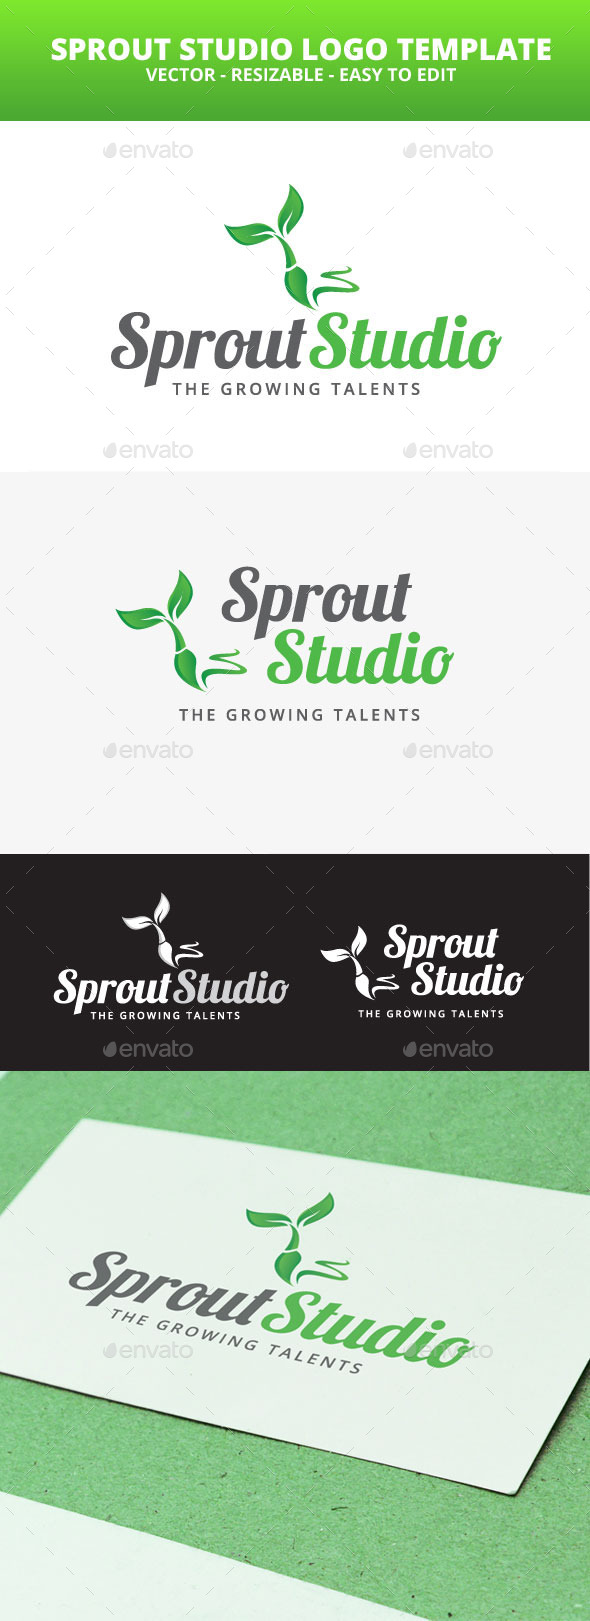 GraphicRiver Sprout Studio Logo Template 10821890